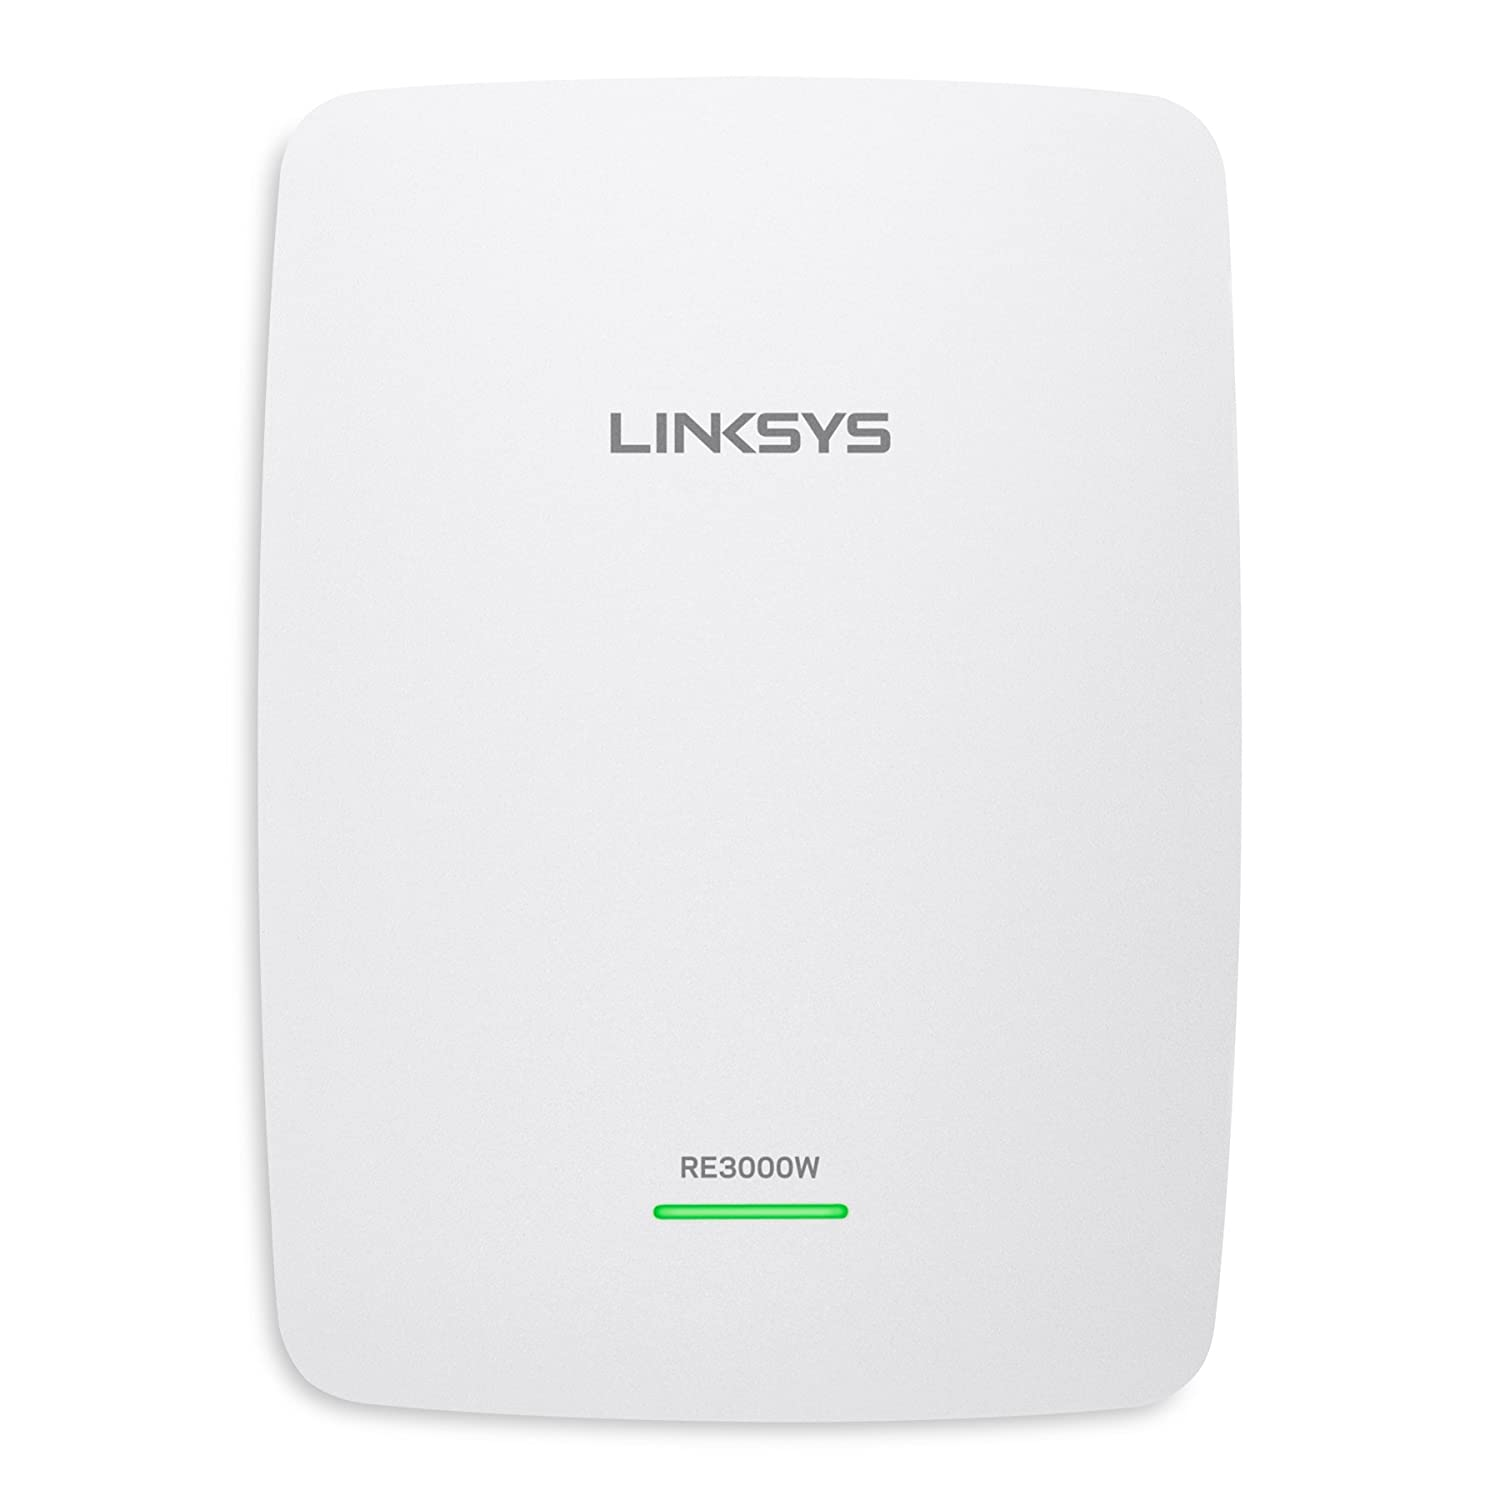 Linksys Wireless Router Setup Diagram | Wiring Library